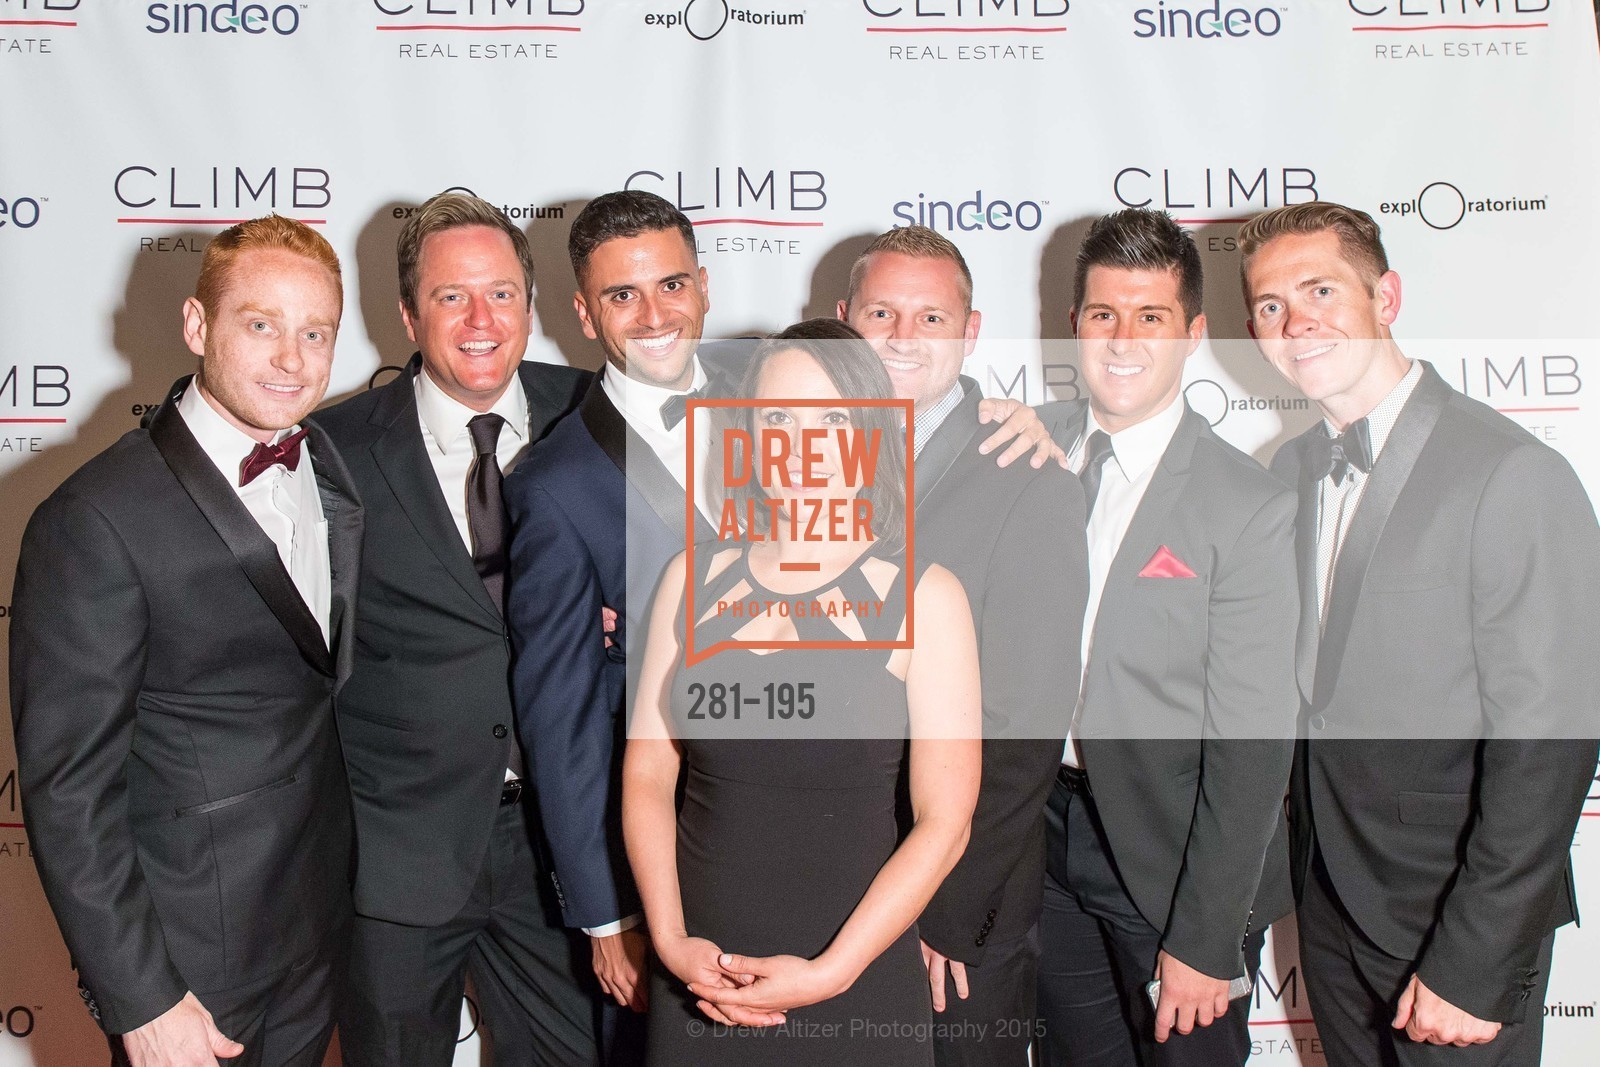 Harrison Malone, Mark Decloux, Matt Wathen, Laura Pallin, Mike Schmidt, Lucas Sorah, Zach Shubkagel, Climb Real Estate and Sindeo Celebrate the Launch of Million Dollar Listing San Francisco, Local Edition San Francisco. 691 Market St, July 8th, 2015,Drew Altizer, Drew Altizer Photography, full-service agency, private events, San Francisco photographer, photographer california